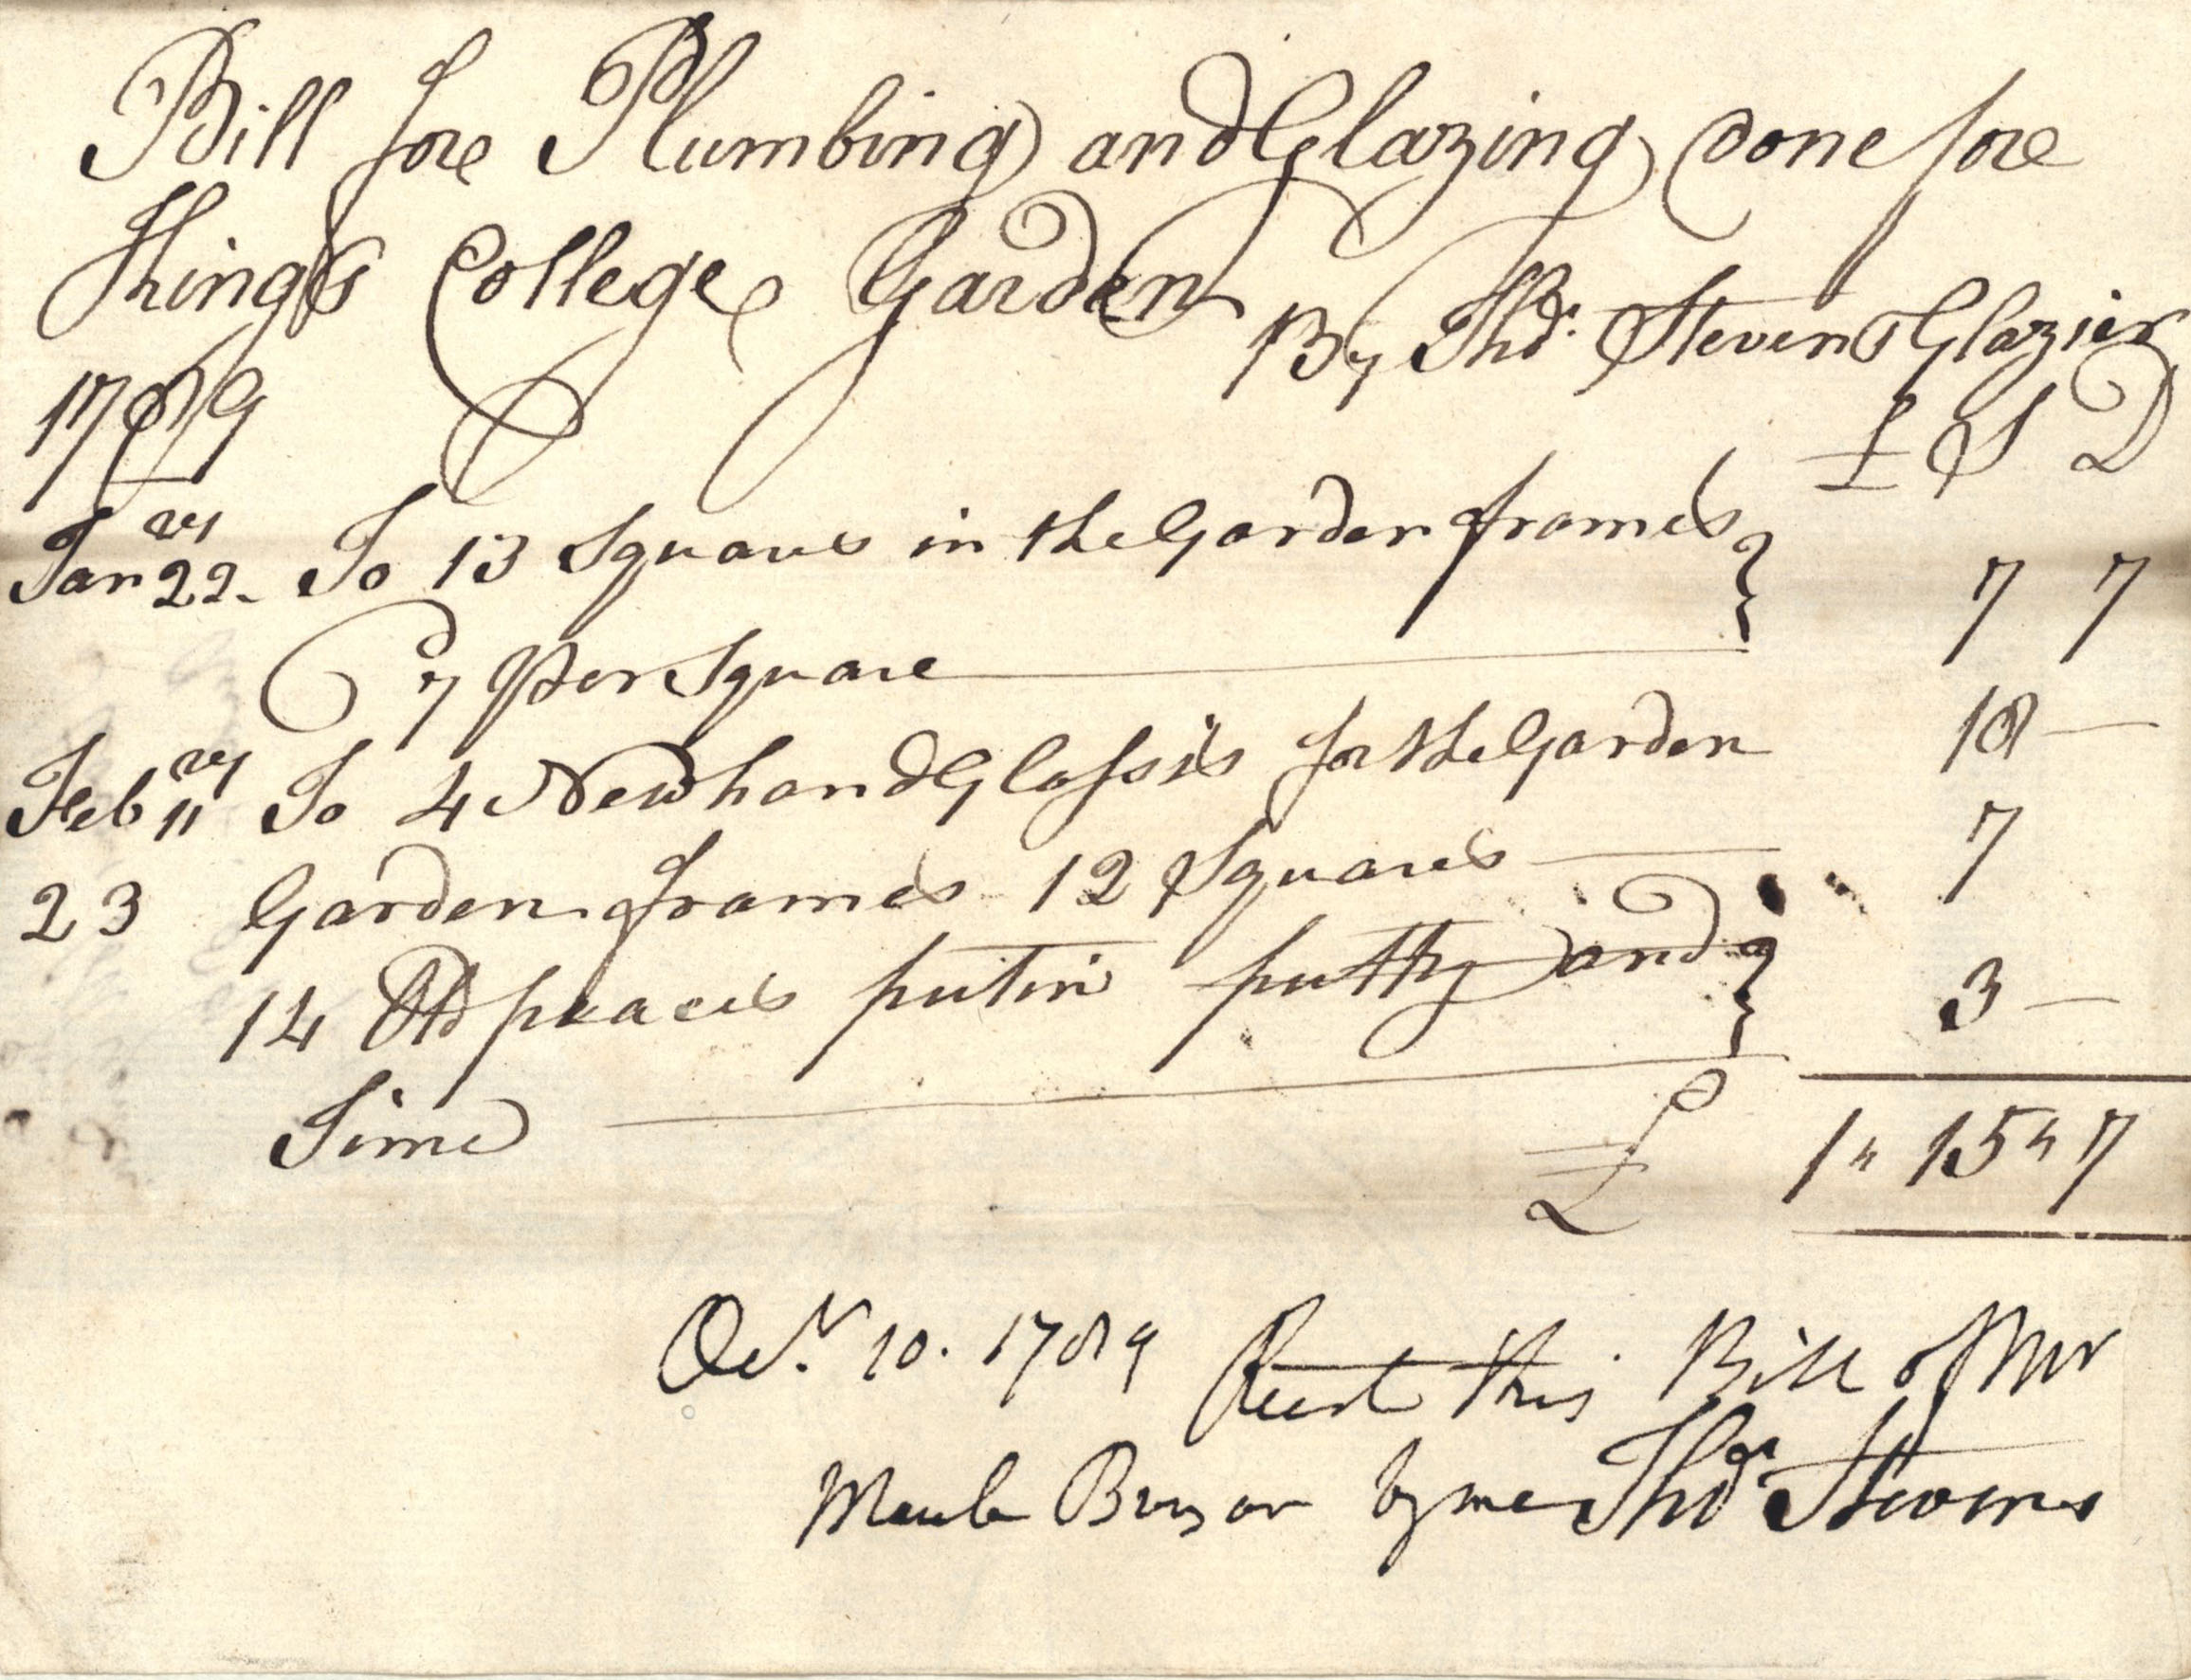 Bill for plumbing and glazing for King's College garden by Thomas Stevens, 1789 (KCA/236).